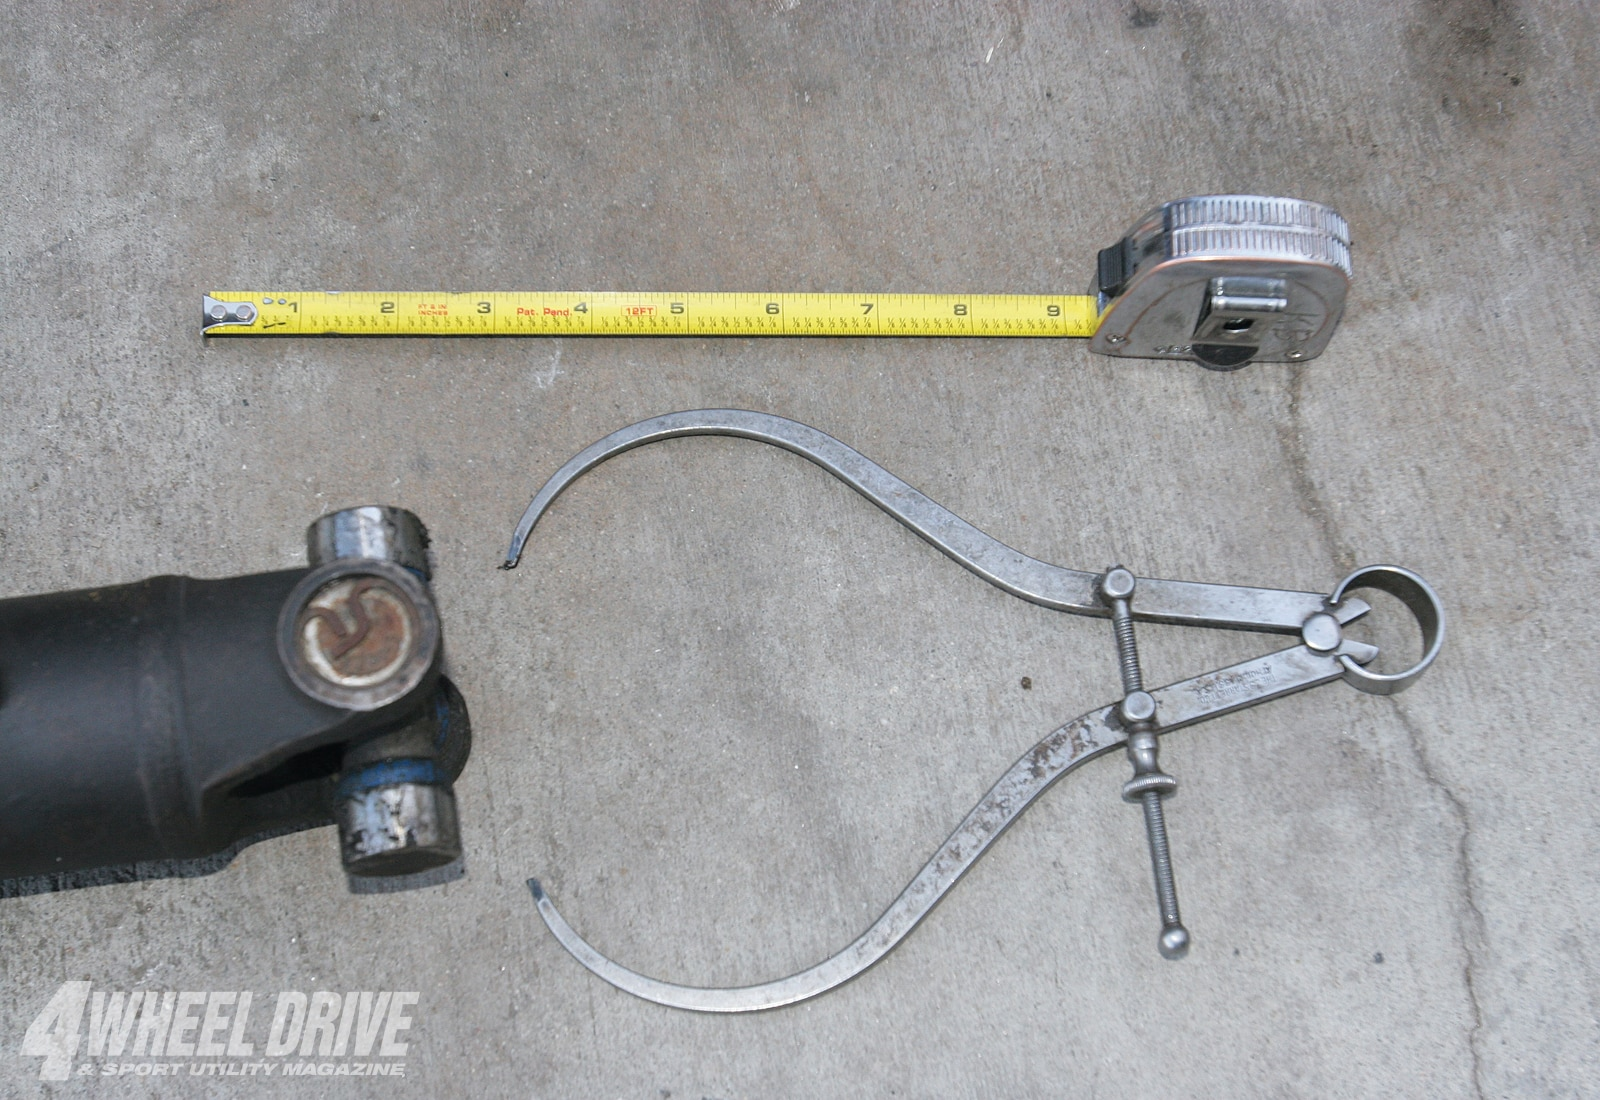 1003 4wd 07+1991 jeep cherokee xj unlimited buildup+slip yoke eliminator